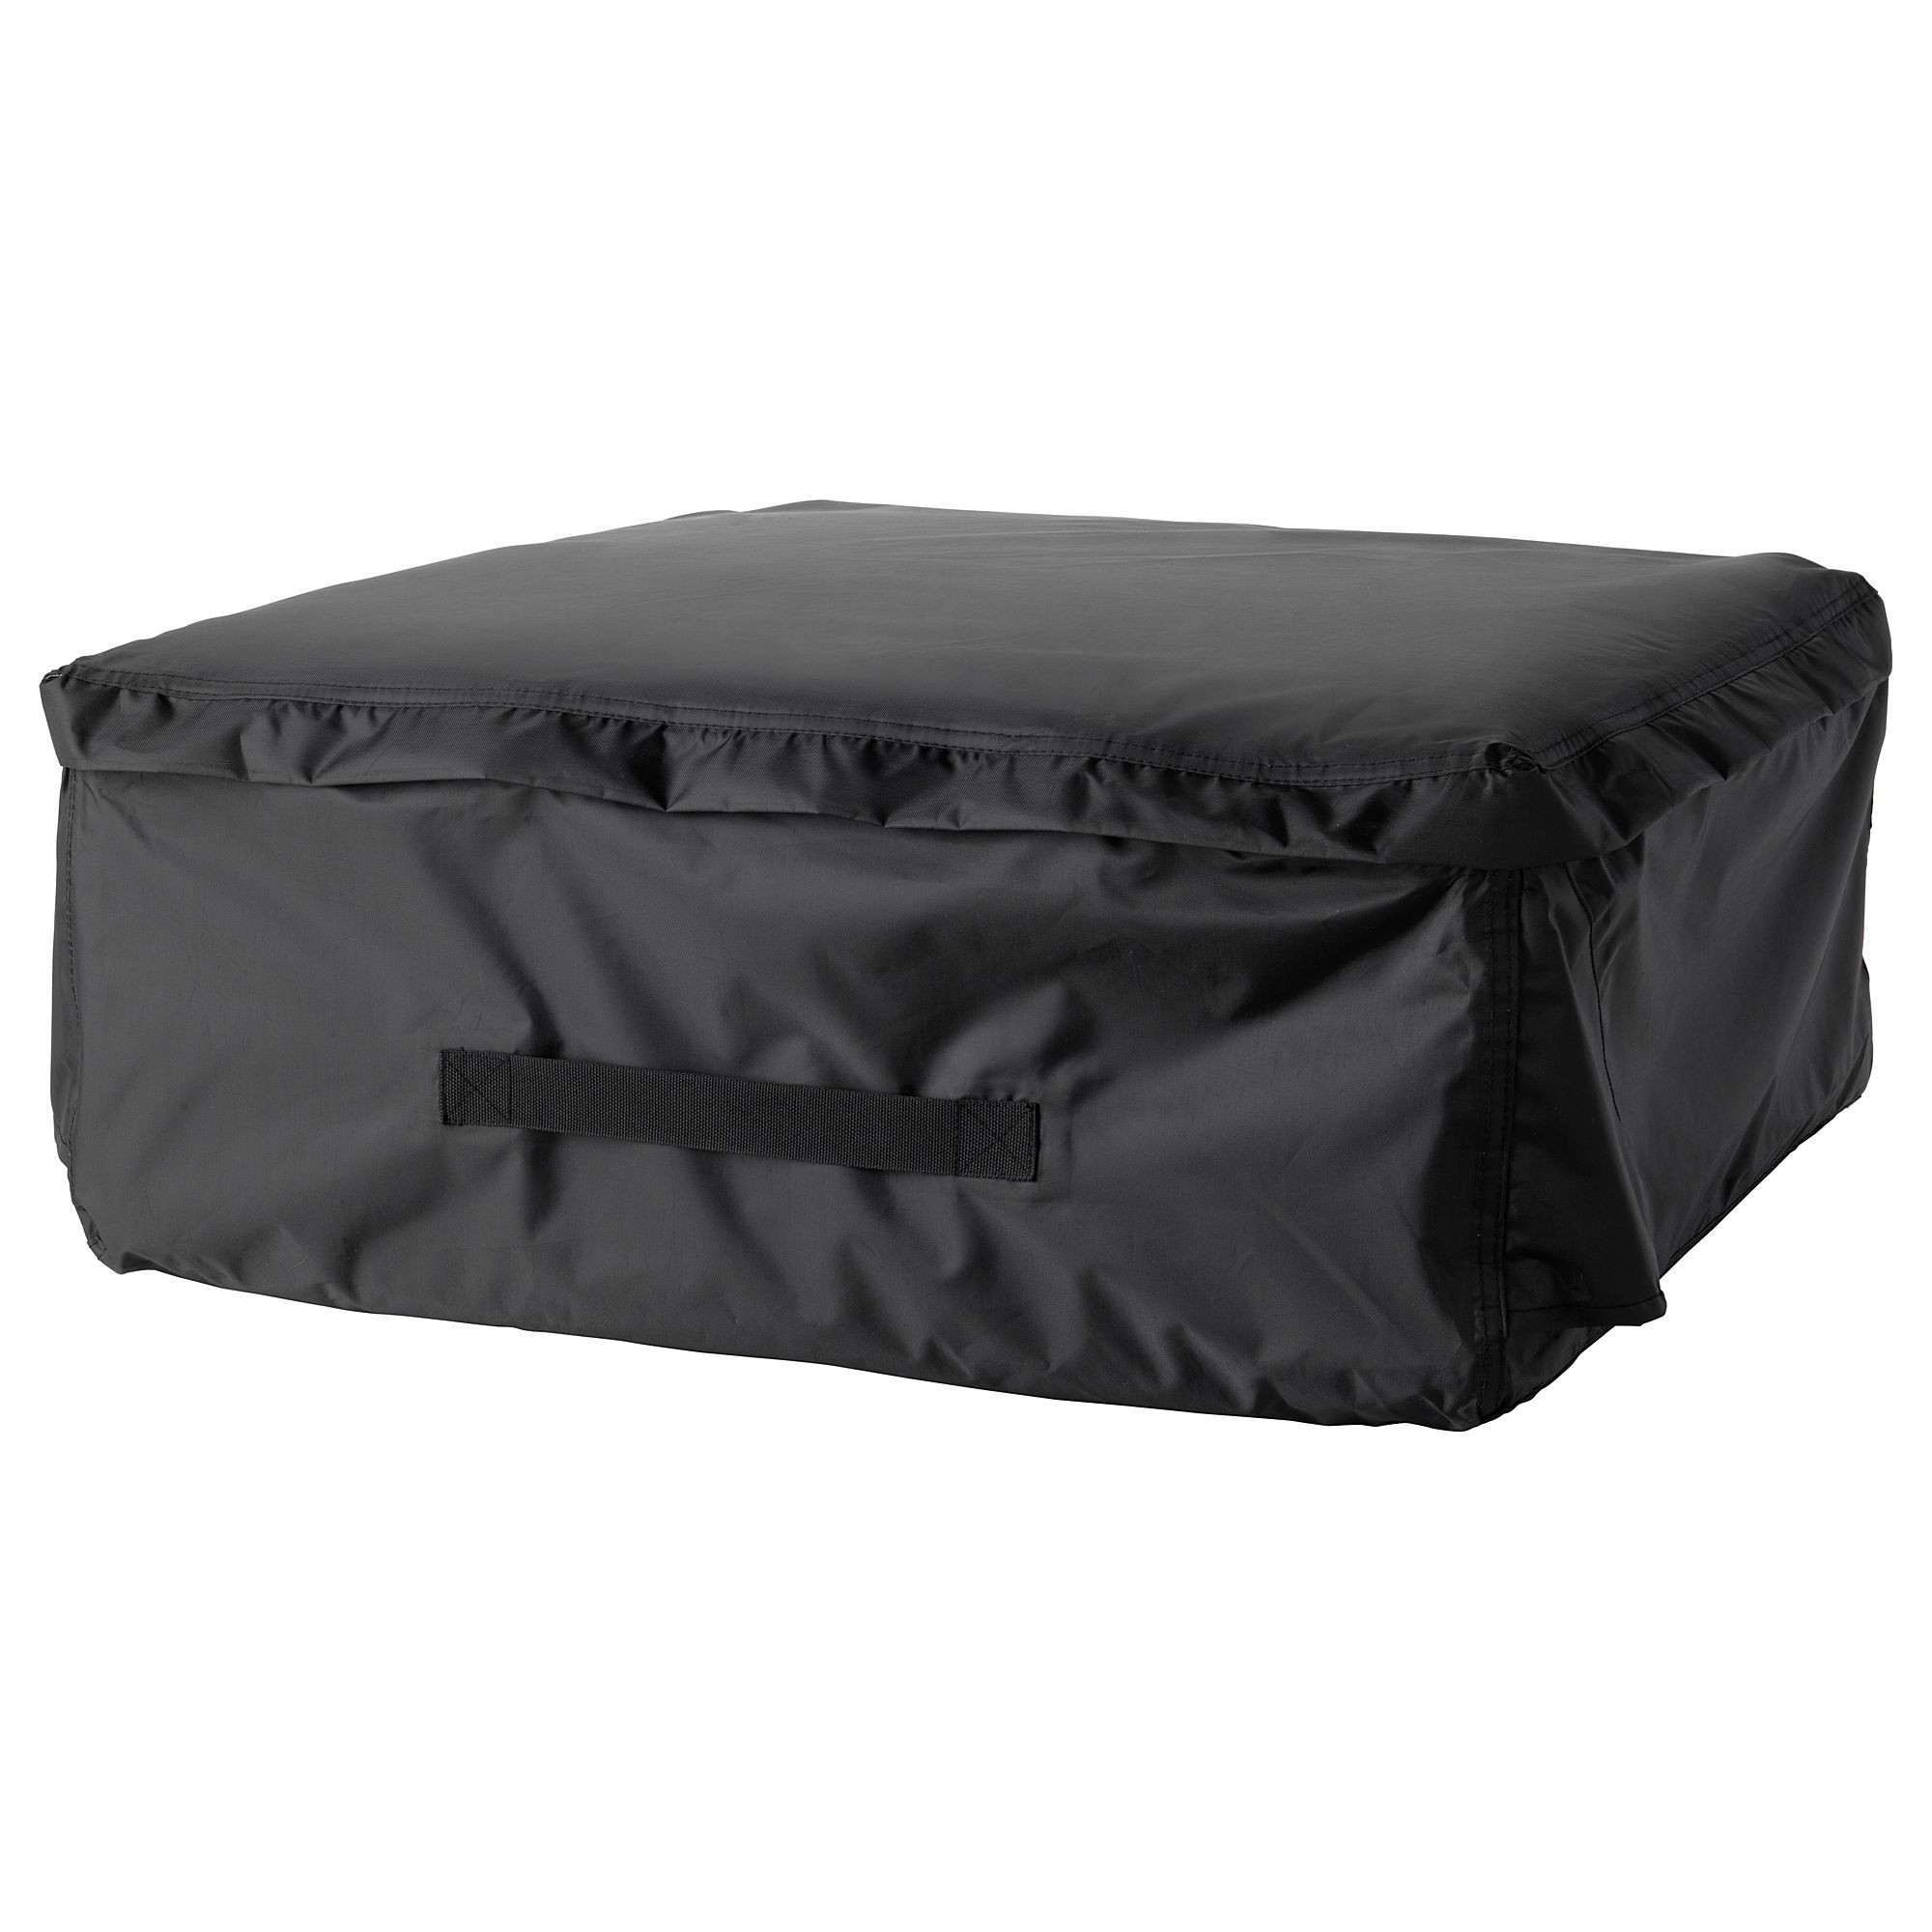 Tostero Storage Bag For Pads And Cushions Black 24 3 8x24 3 8